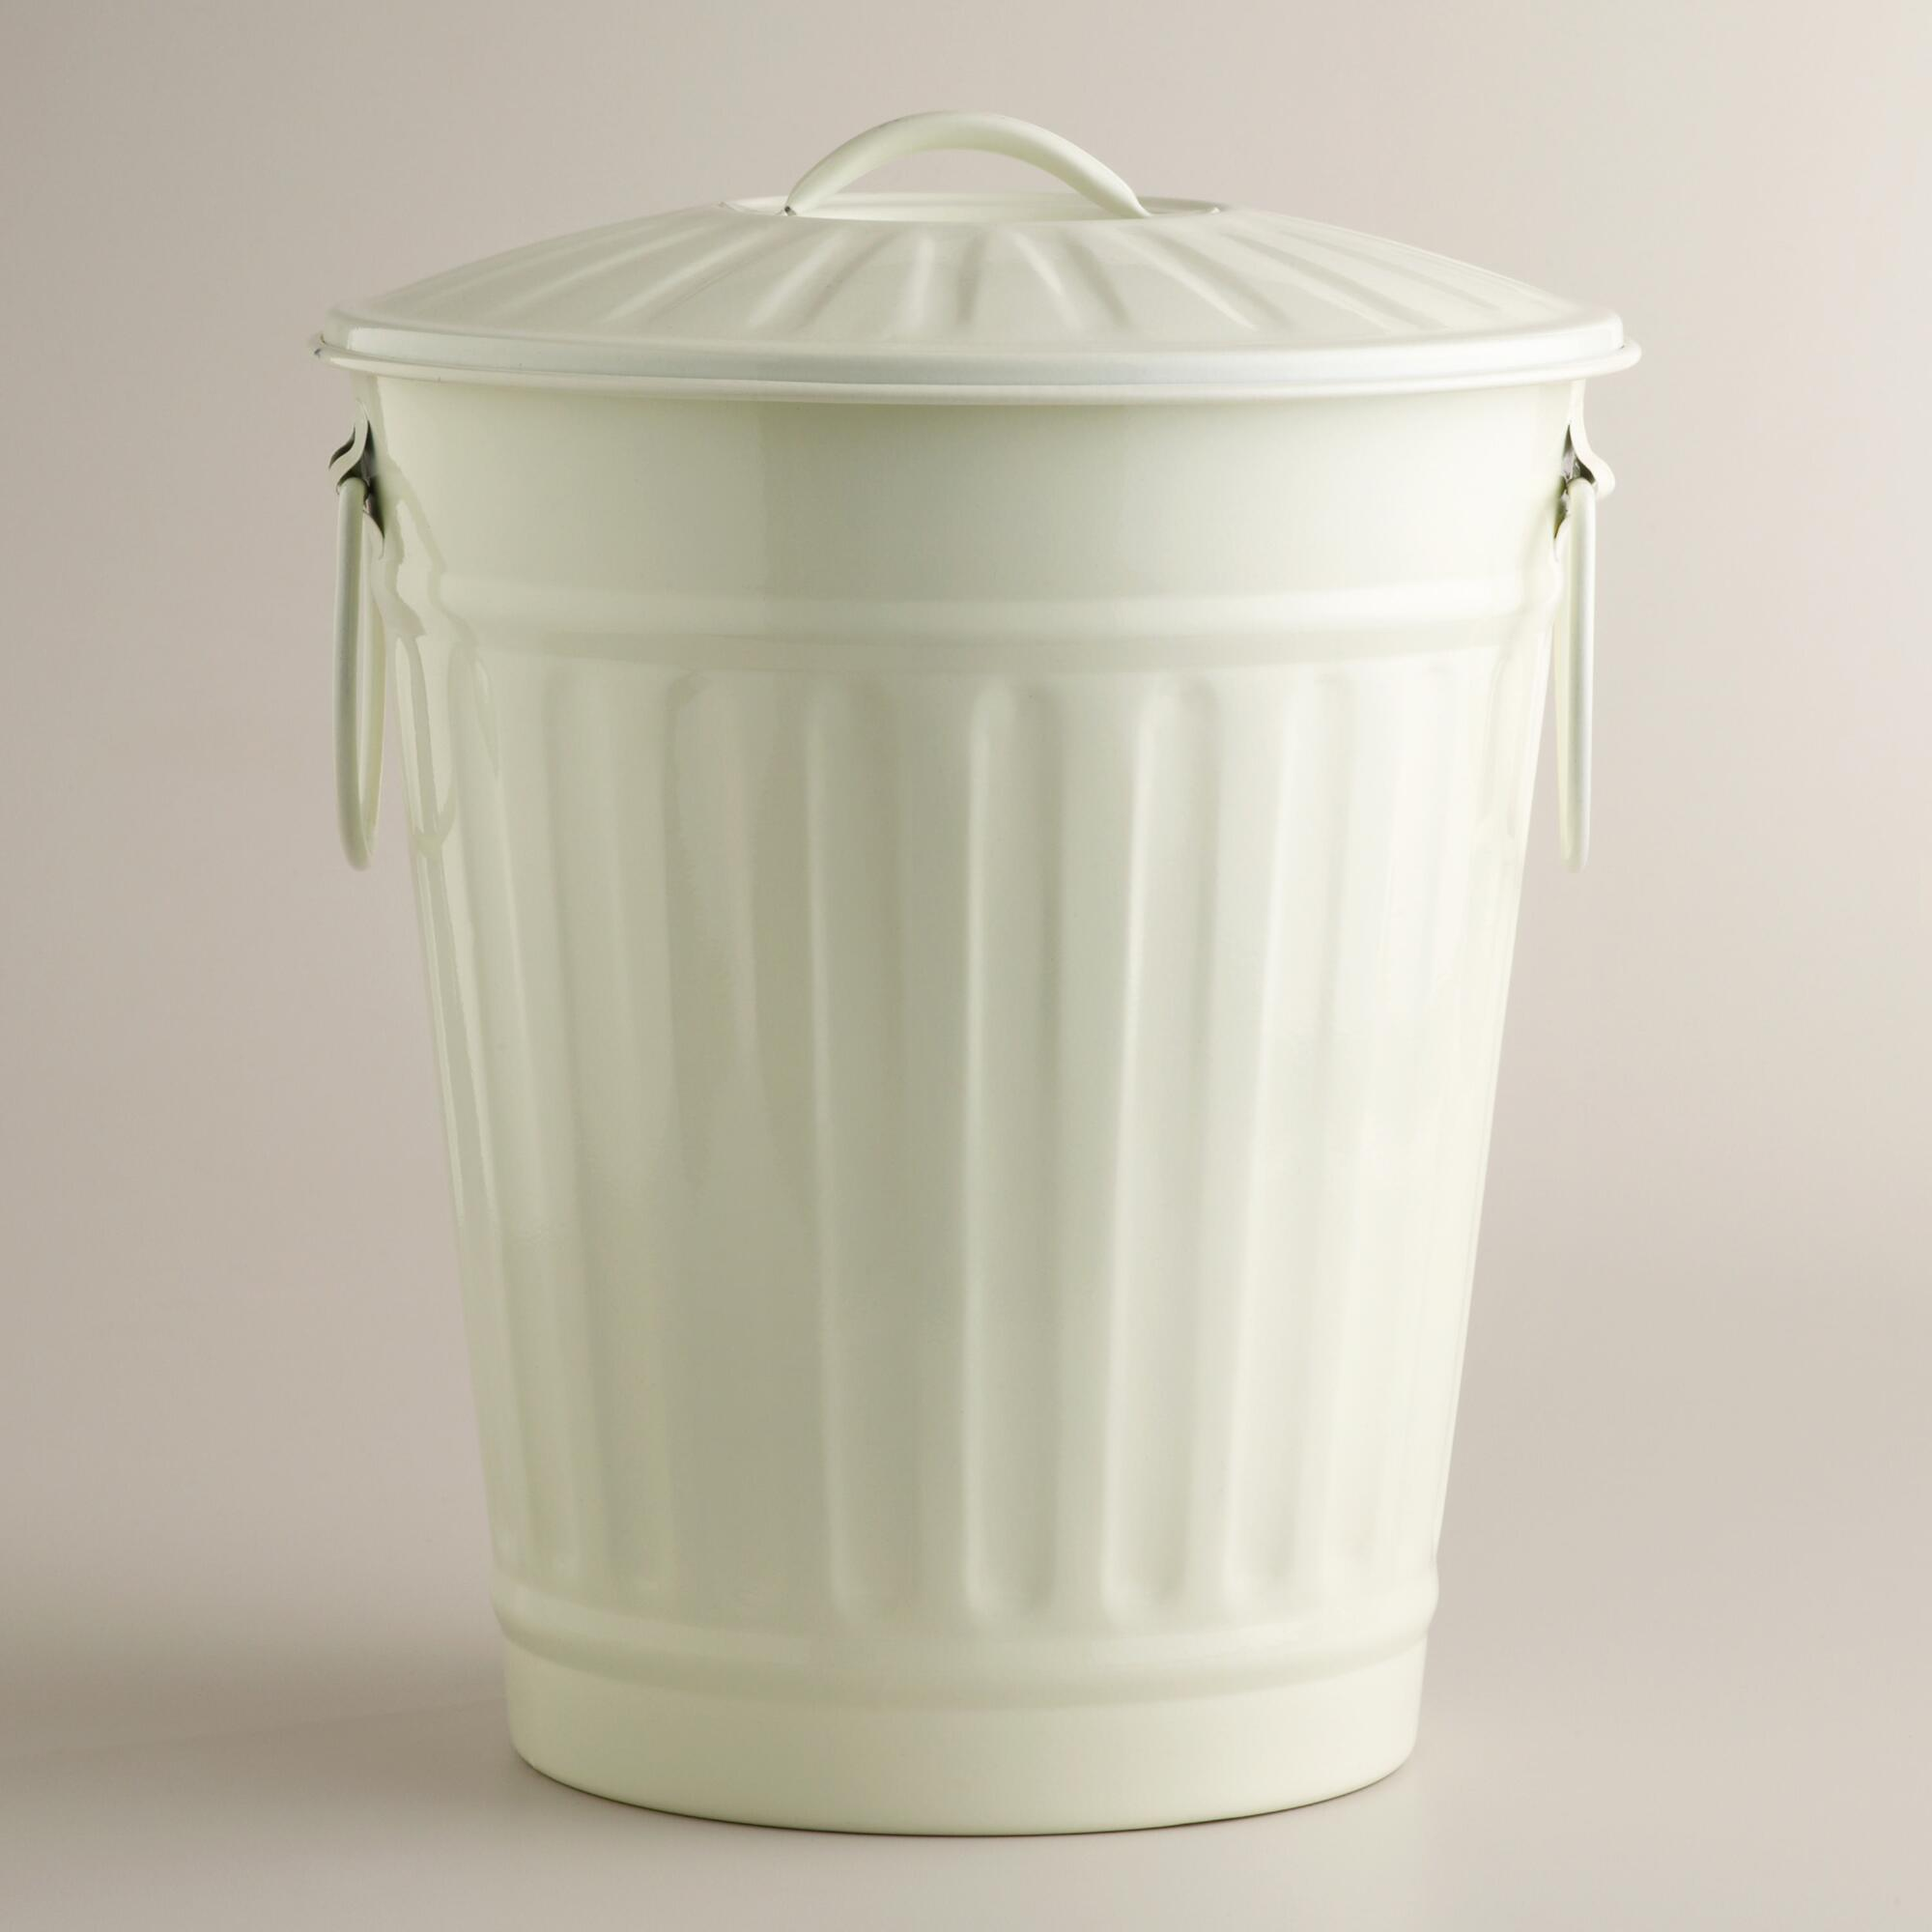 Retro Kitchen Trash Can Track Lighting Cans Home And Furnitures Reference